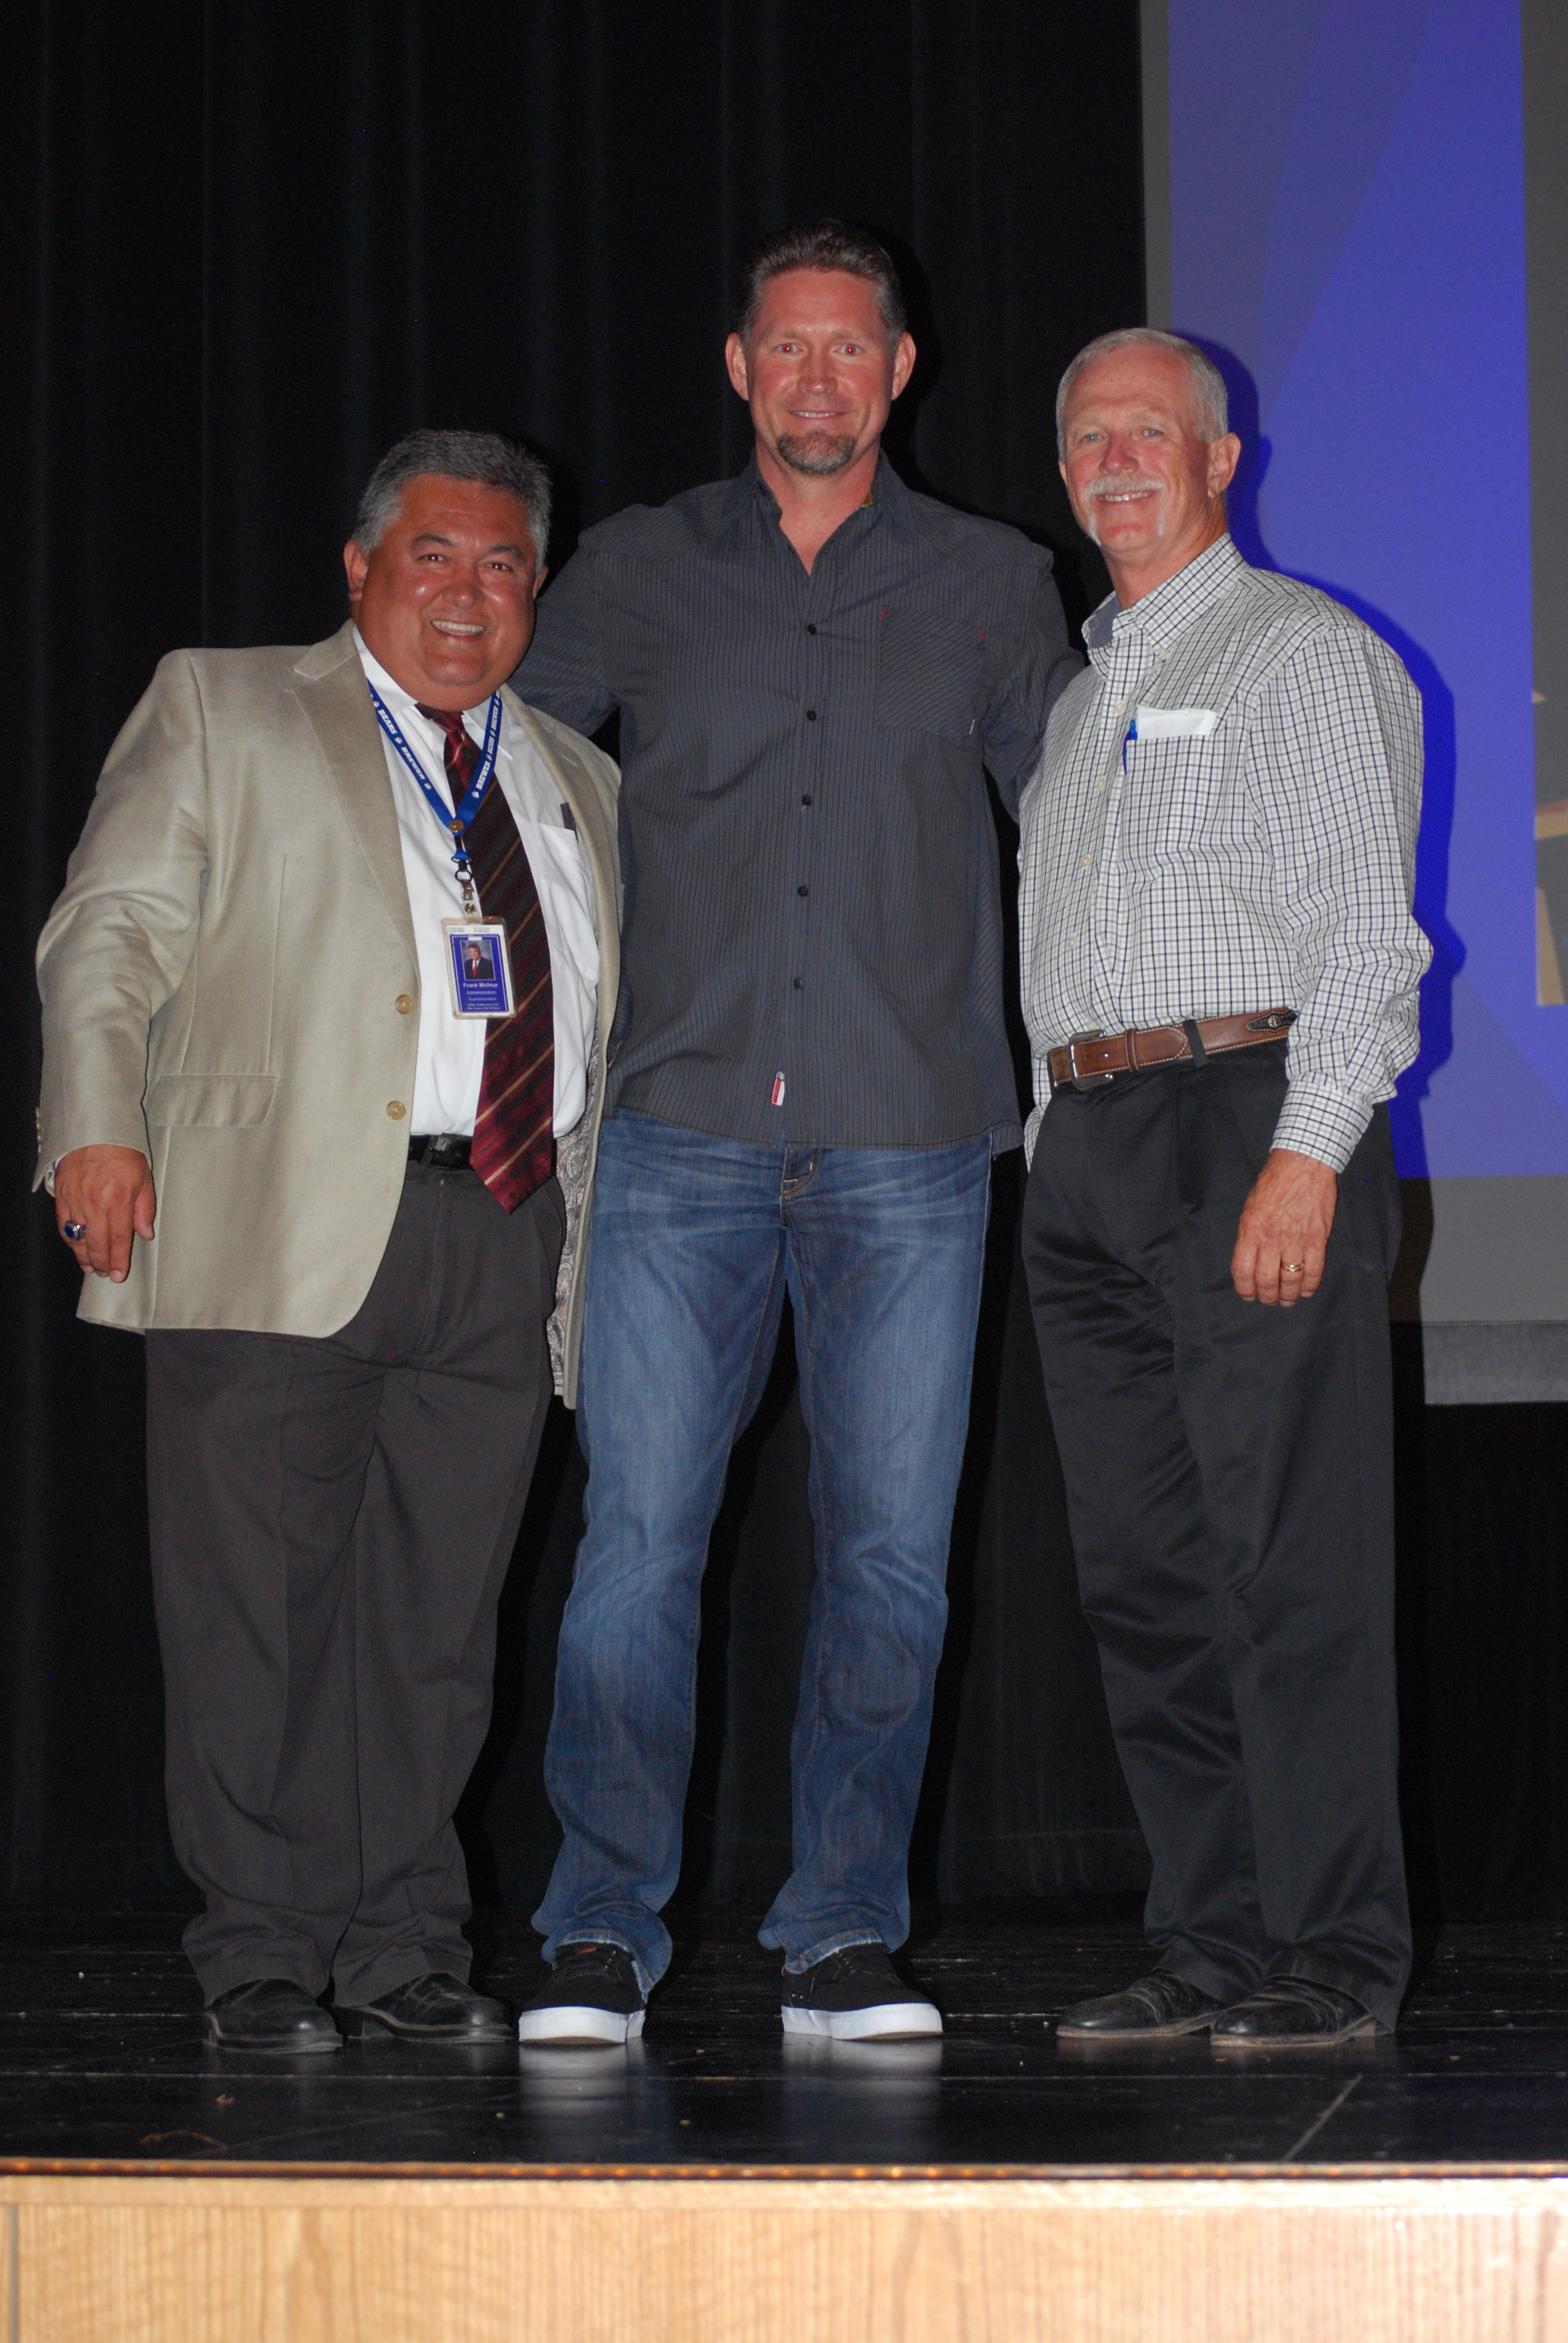 Inductee Aubrey Huff (1995) is pictured with Superintendent Frank Molinar and former Brewer baseball coach Terry Massey, a 2010 and 2011 inductee.